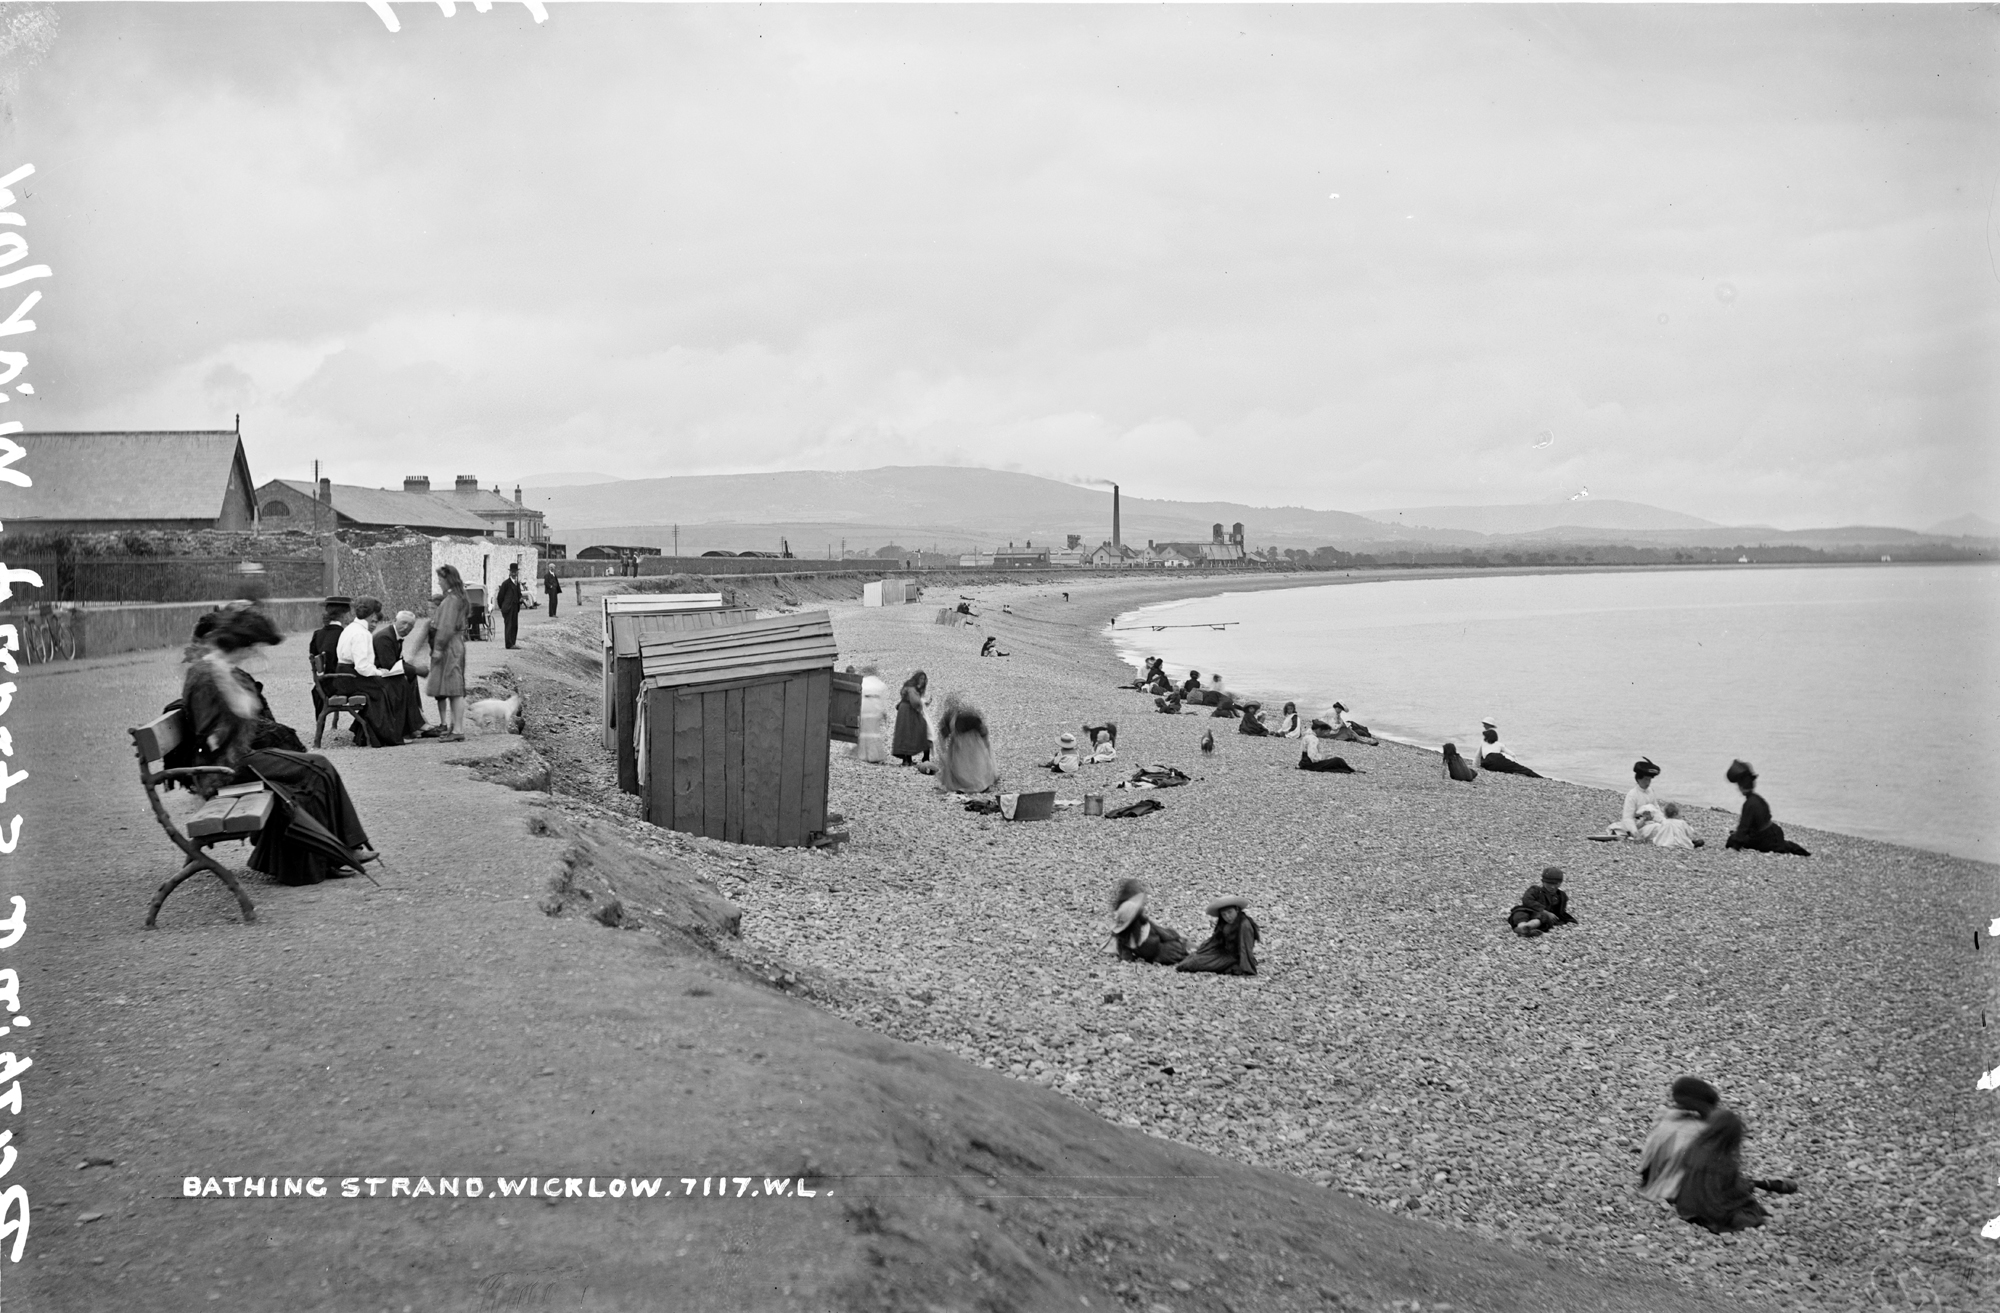 Bathing Strand, Co. Wicklow